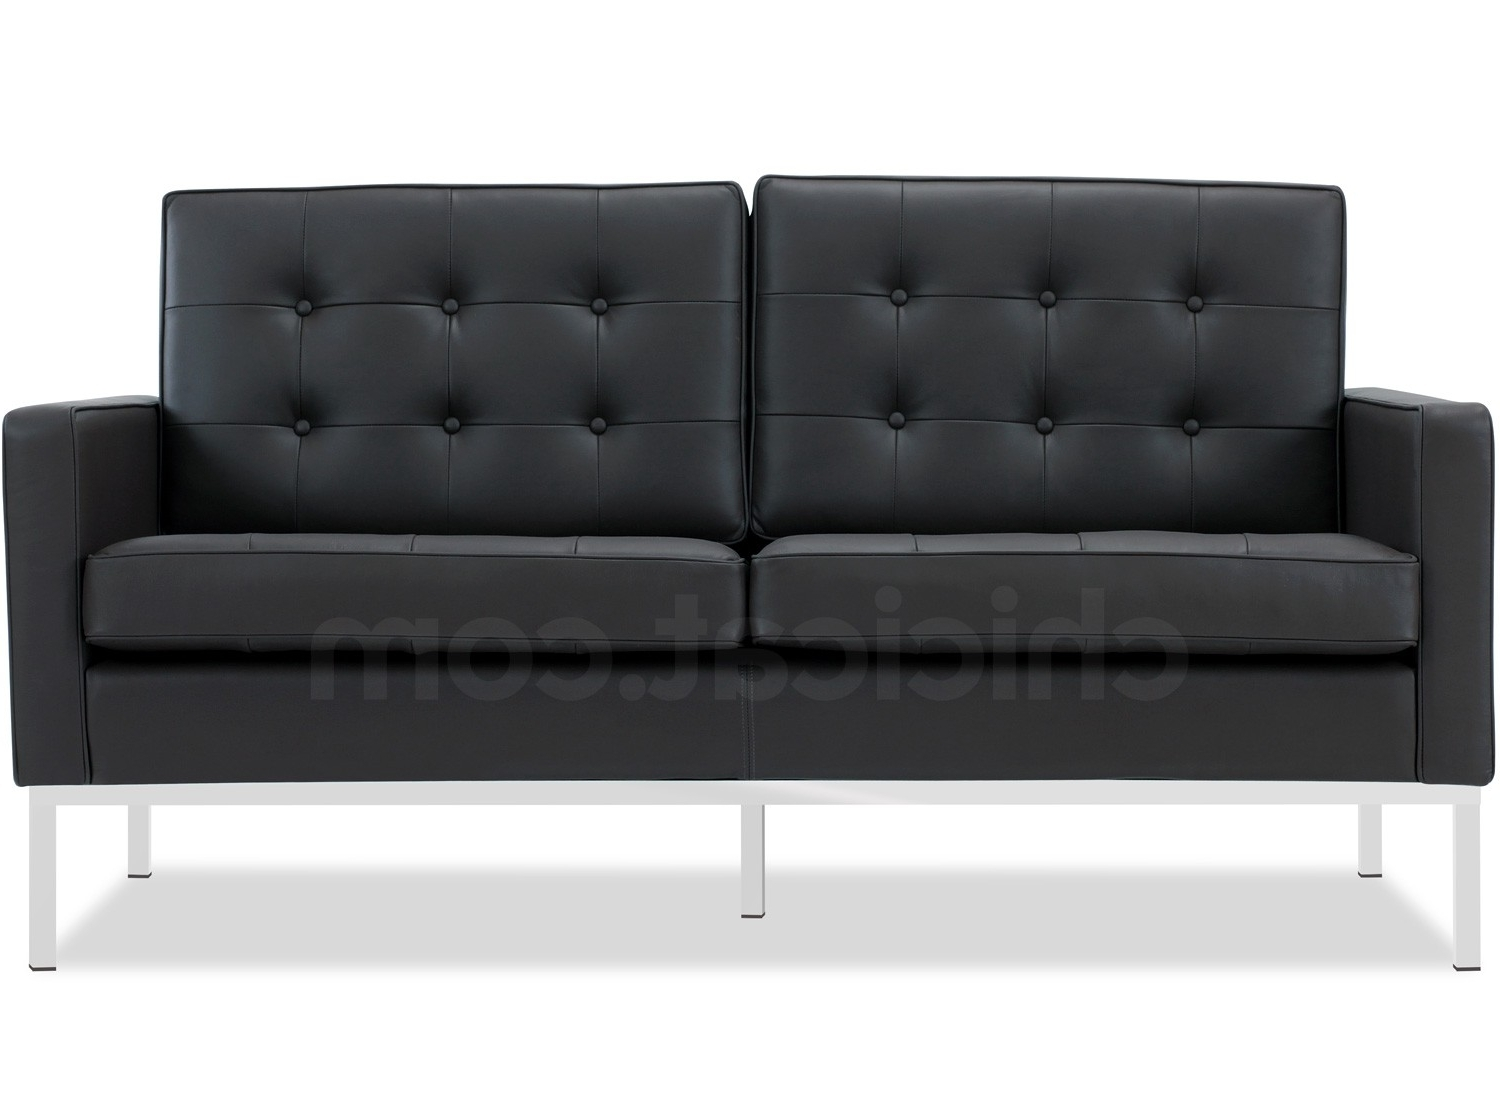 Most Current Florence Knoll Leather Sofas Within Florence Knoll Sofa 2 Seater Leather (Platinum Replica) (View 12 of 15)